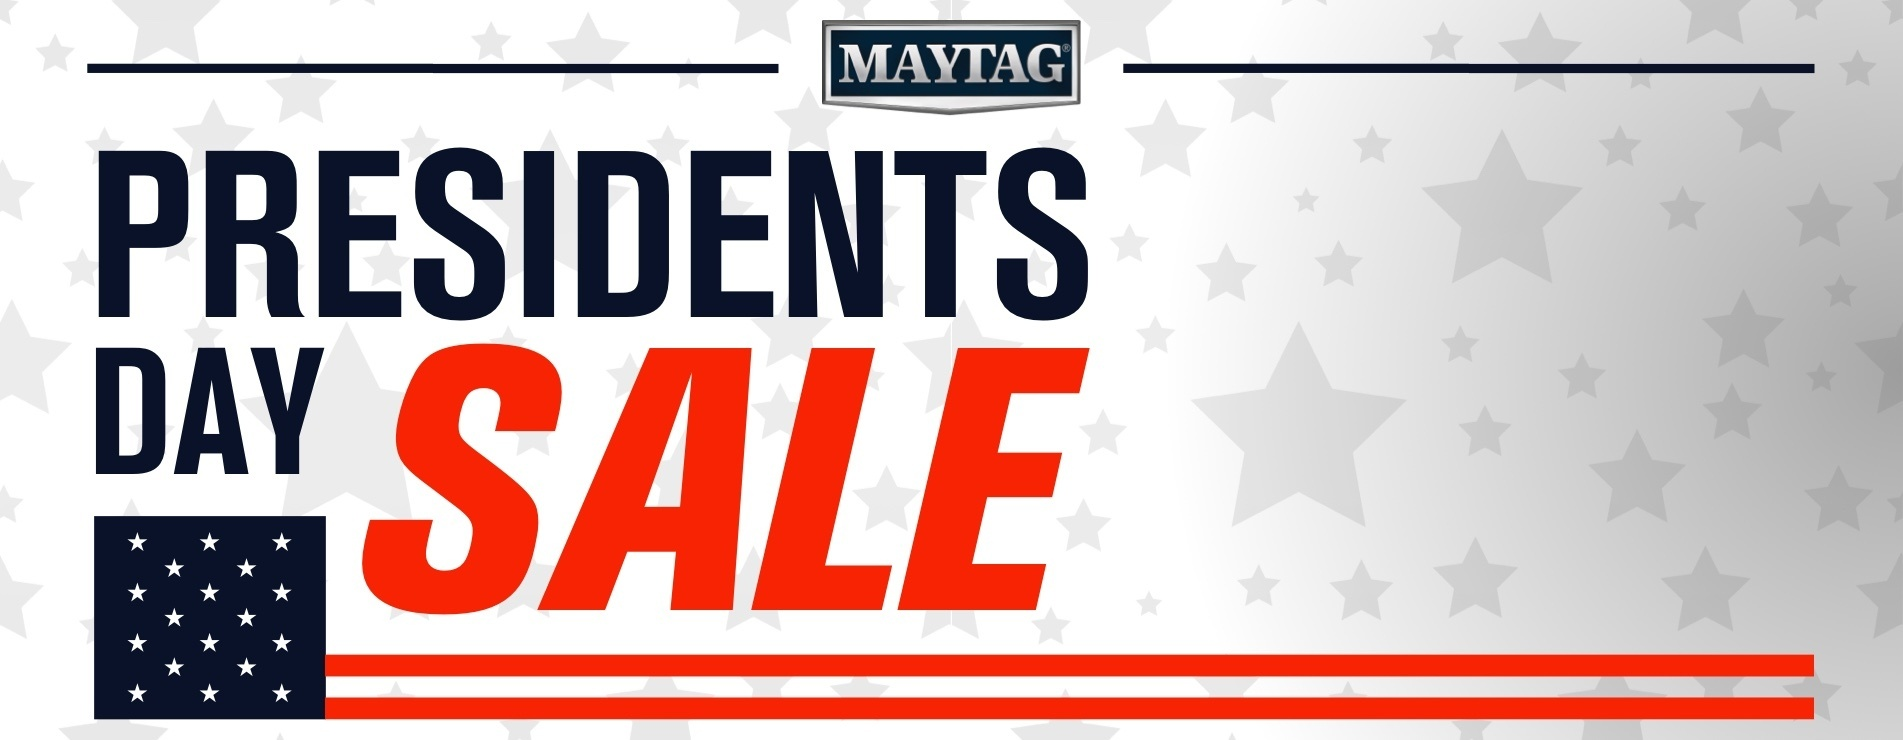 Maytag-Presidents-Day-2021